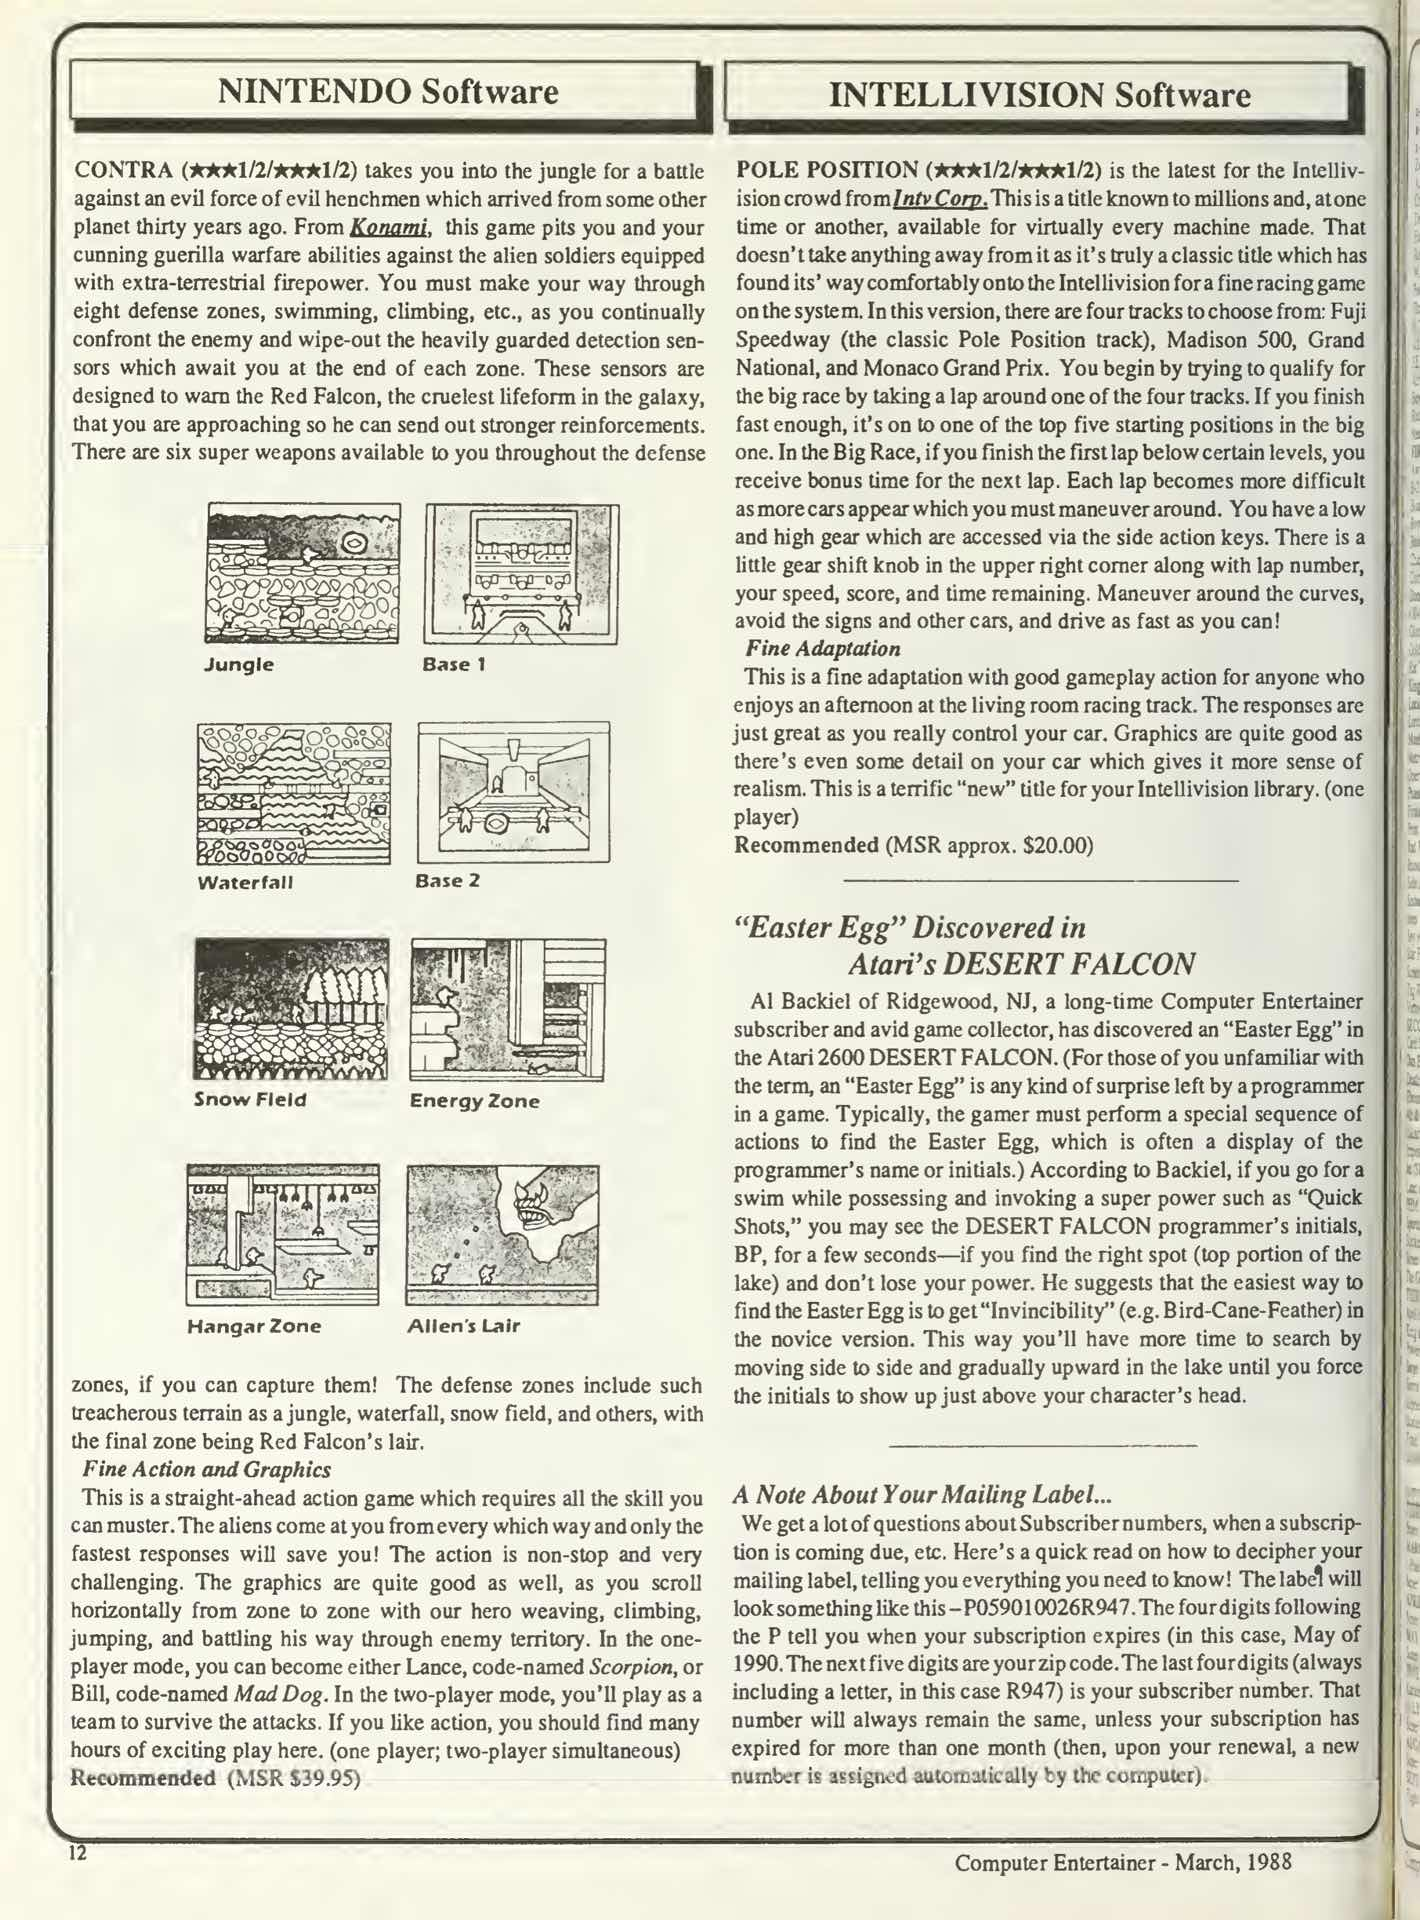 Computer Entertainer March 1988 pg 12